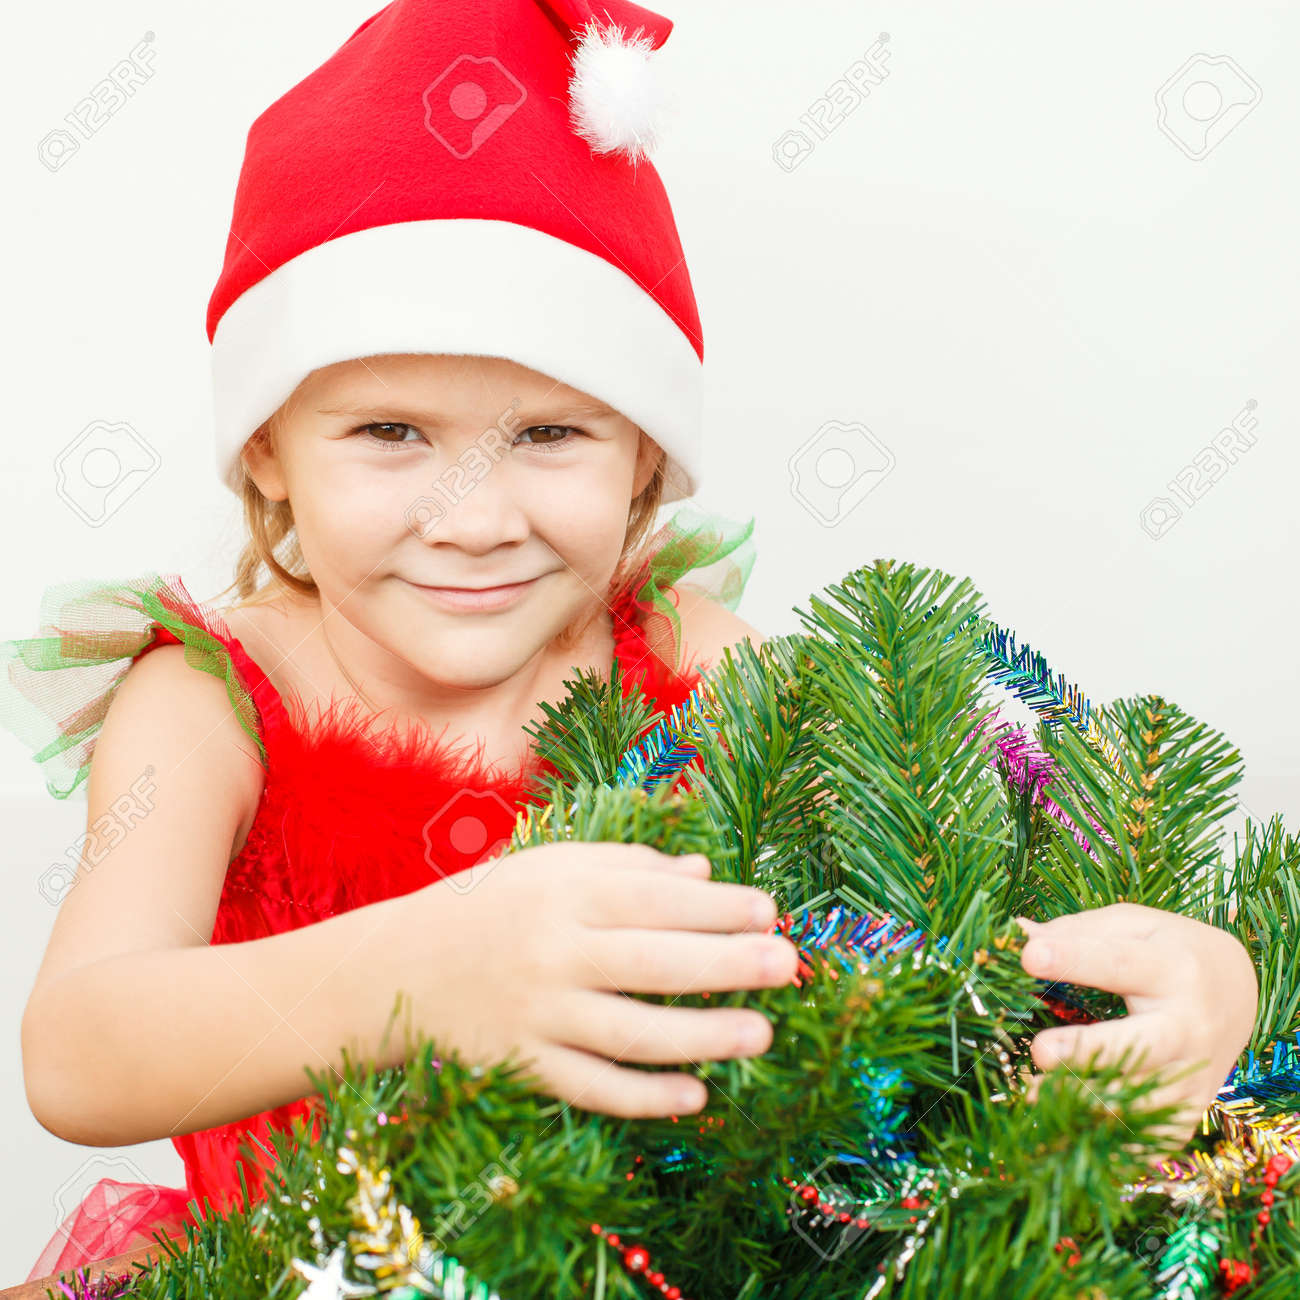 Happy New Year and Merry Christmas Stock Photo - 16825810